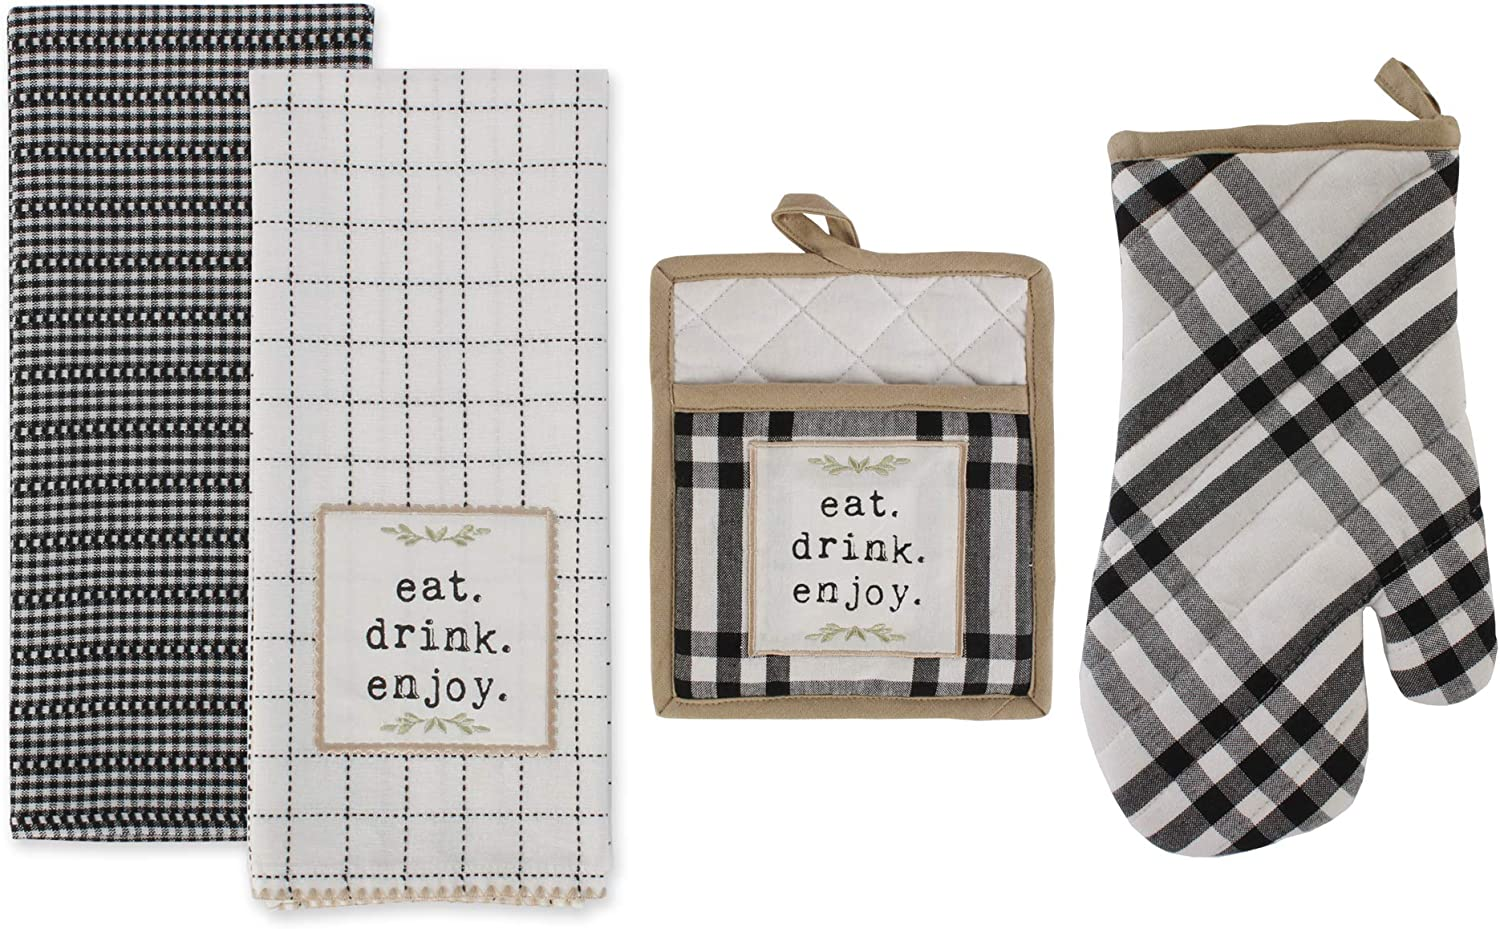 DII Home Sweet Farmhouse Kitchen Textiles Collection Stylish and Functional for Everyday Use, Set, 4 Piece